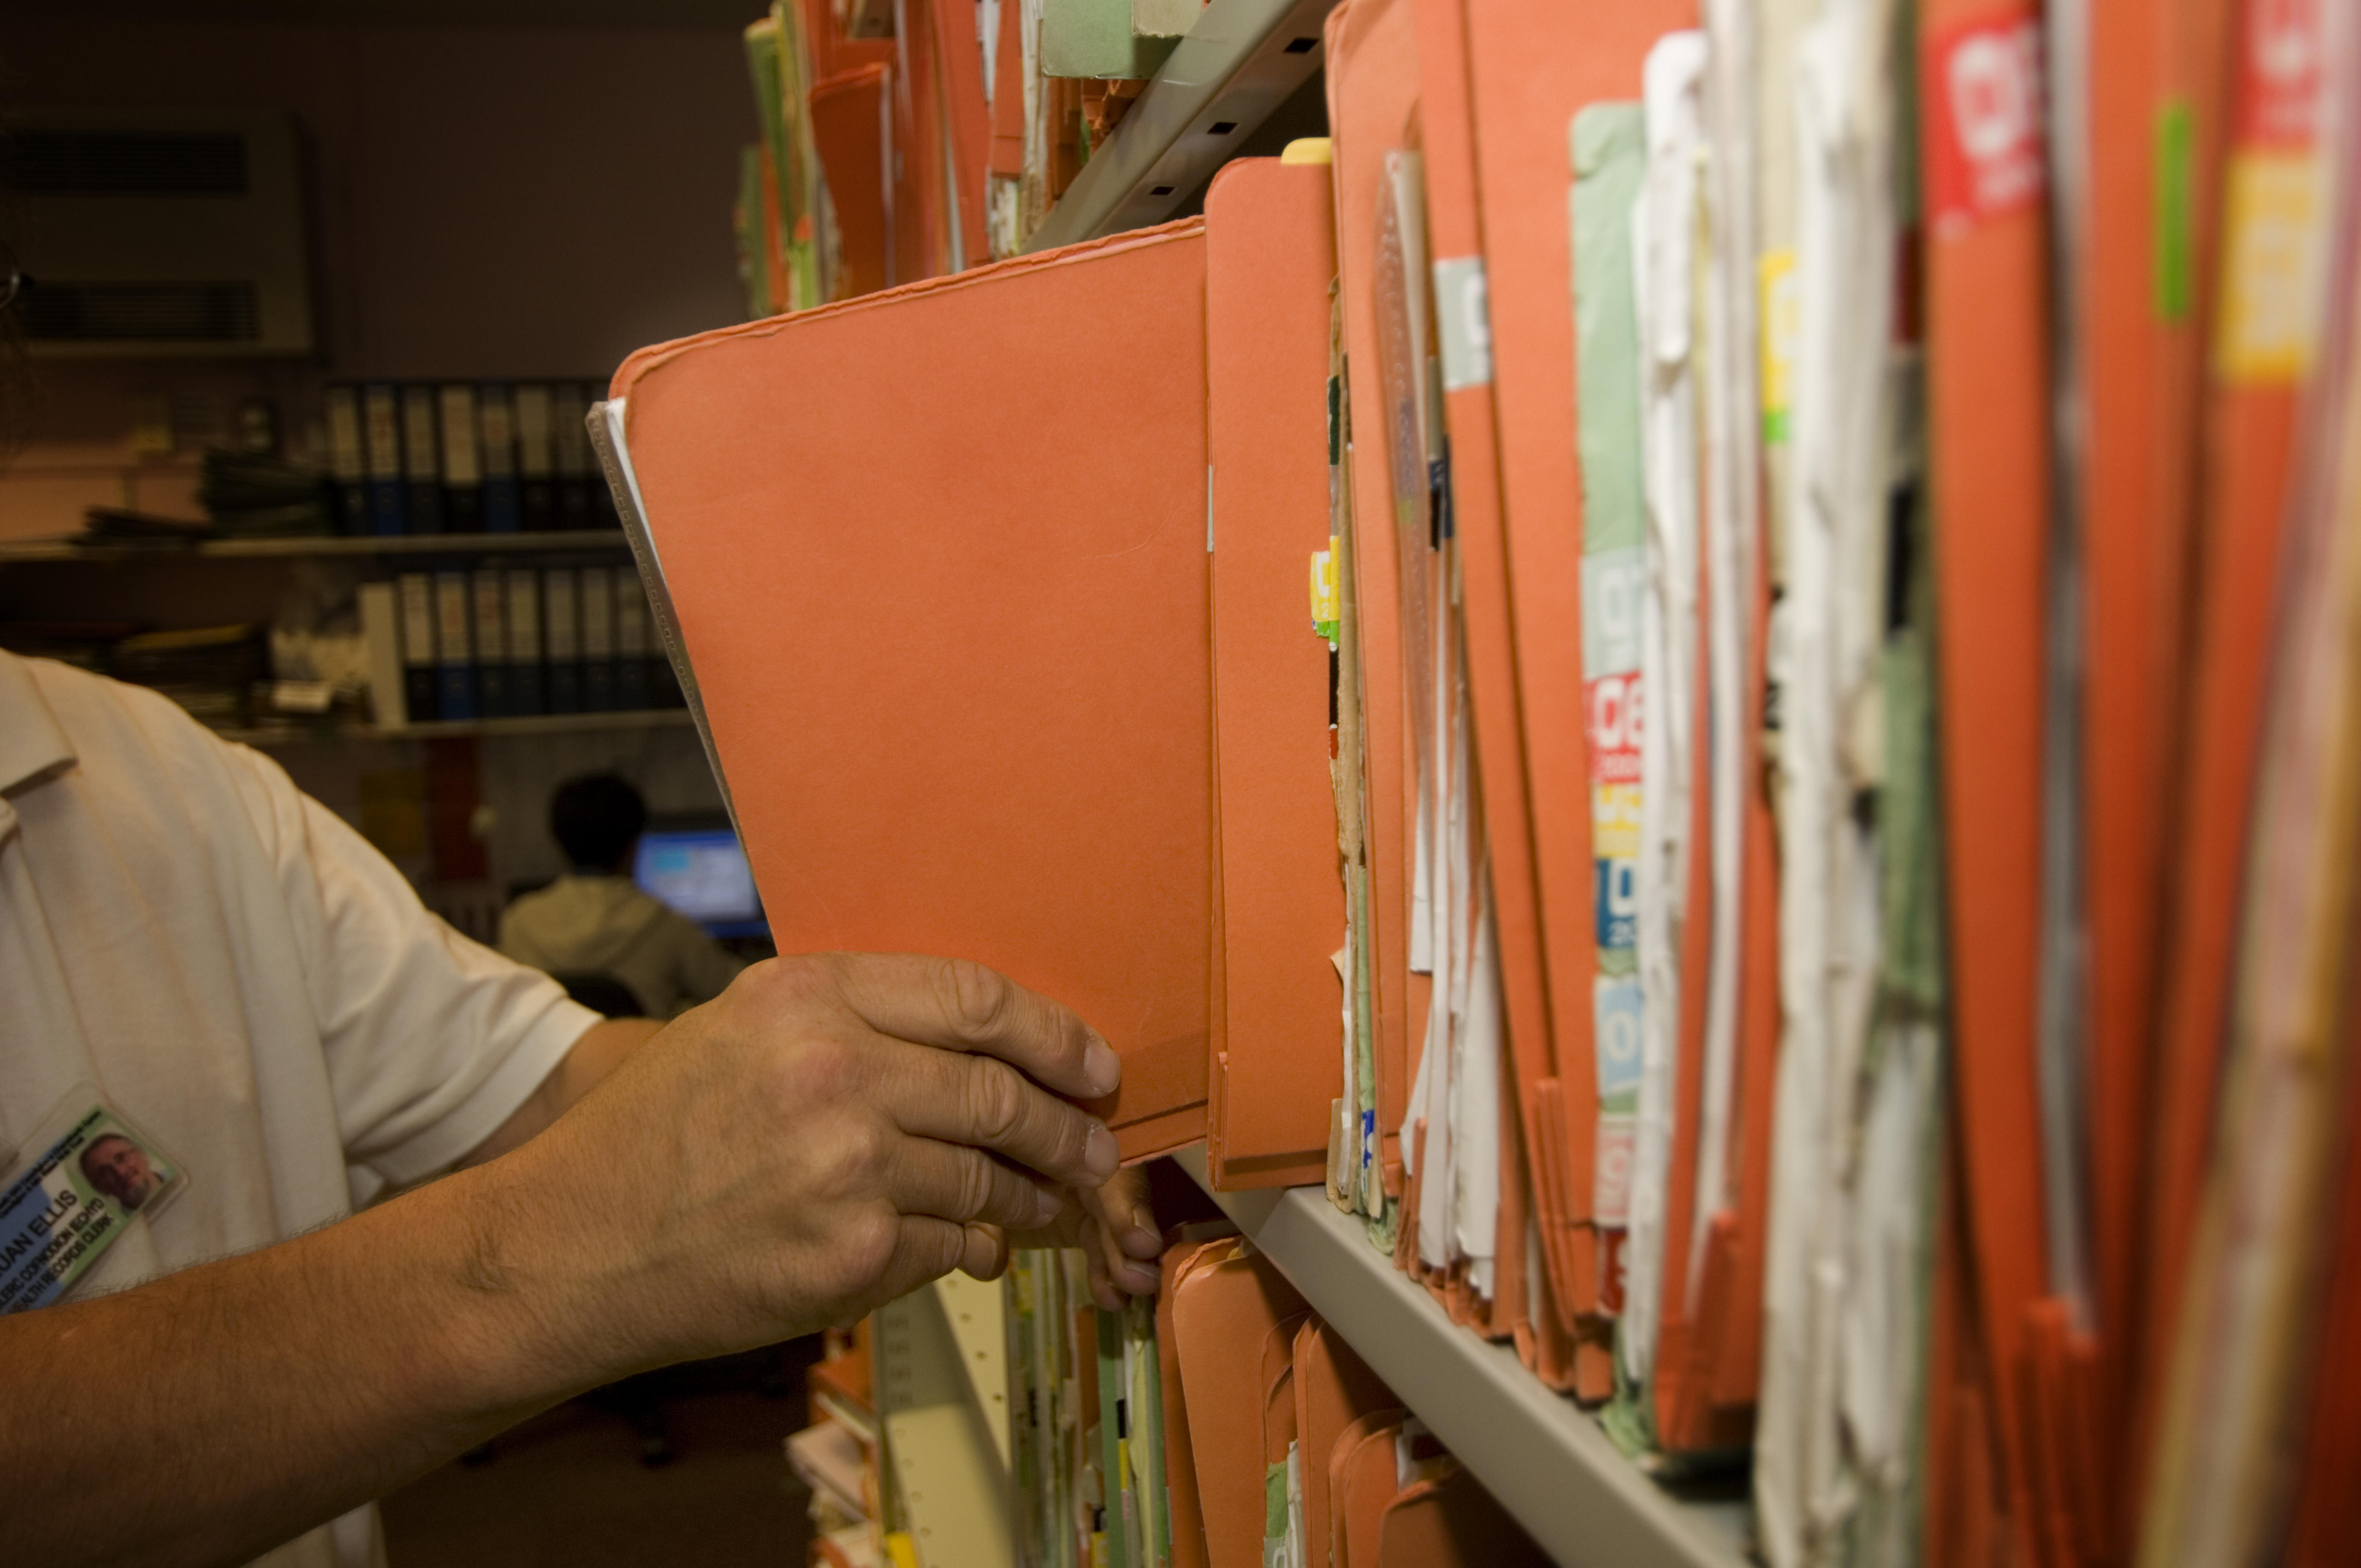 Medical records at Bronglais Hospital, Ceredigion National Health Trust, Aberystwyth, Wales